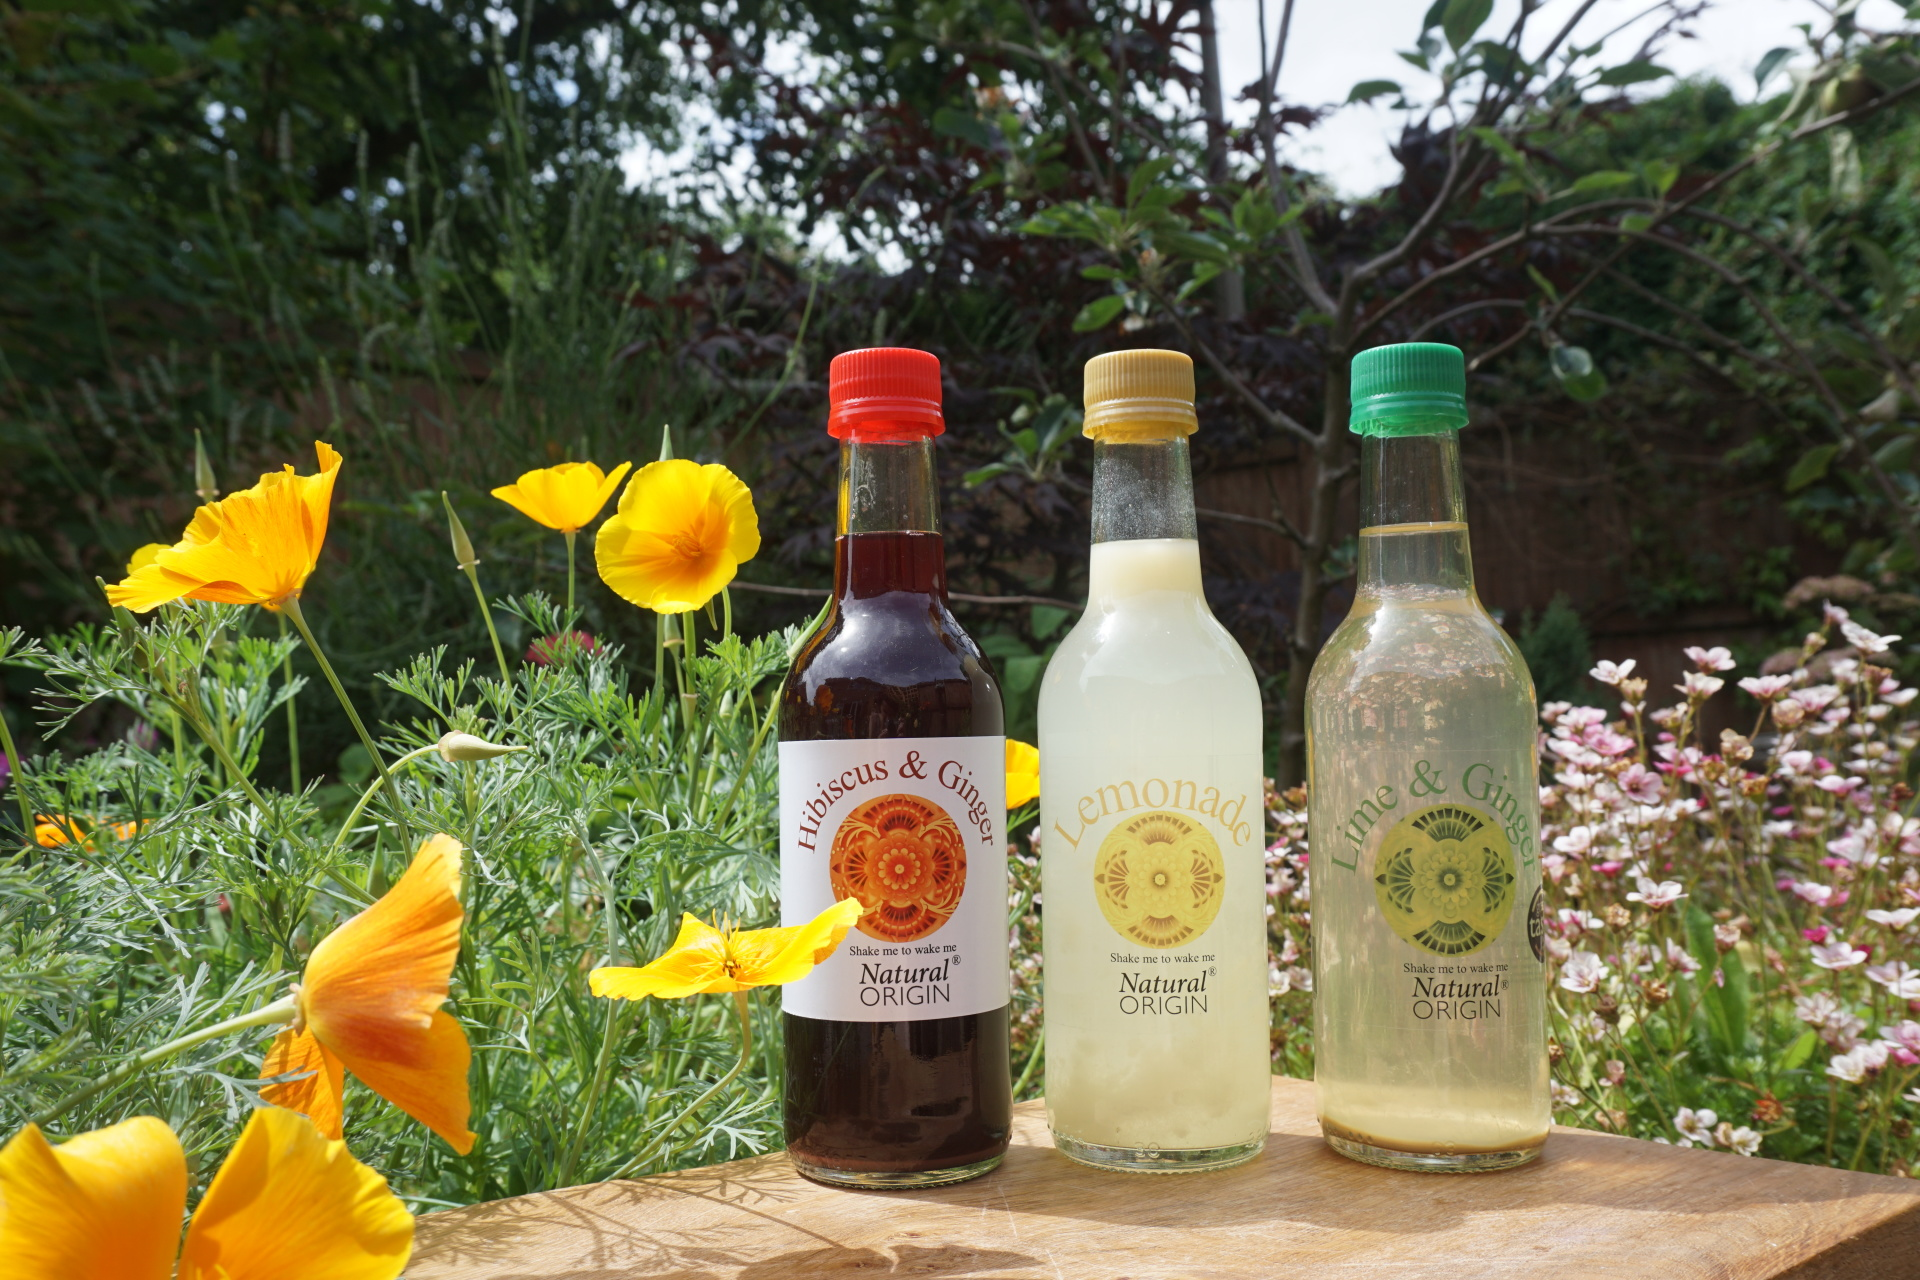 Natural Origin Juices